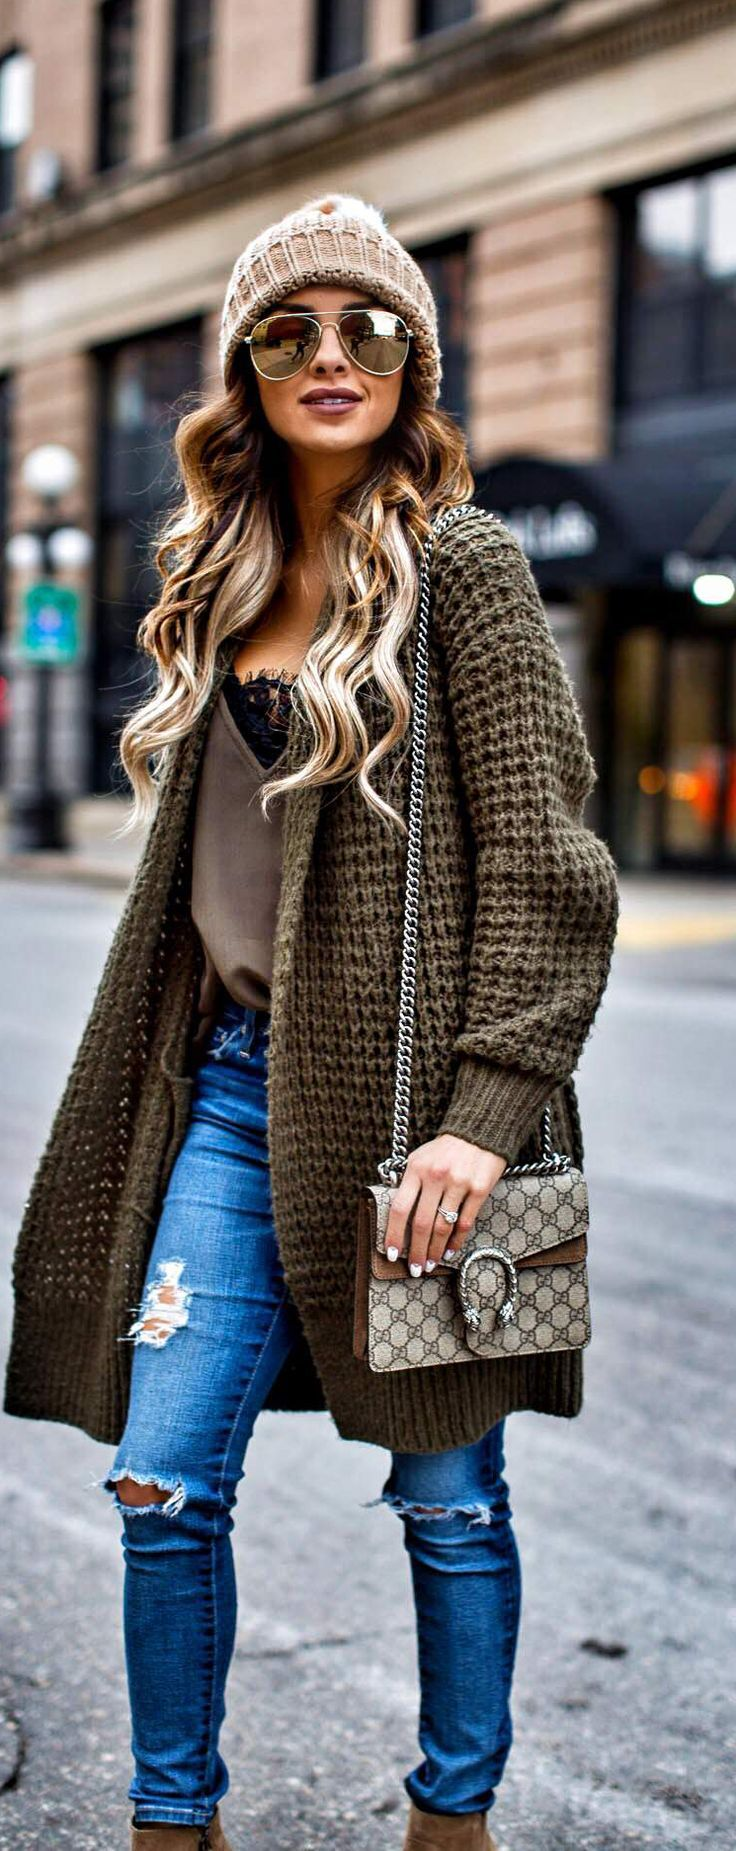 Shades of brown: Slouchy beanie, oversized waffle knit sweater from Nordstrom and distressed jeans.